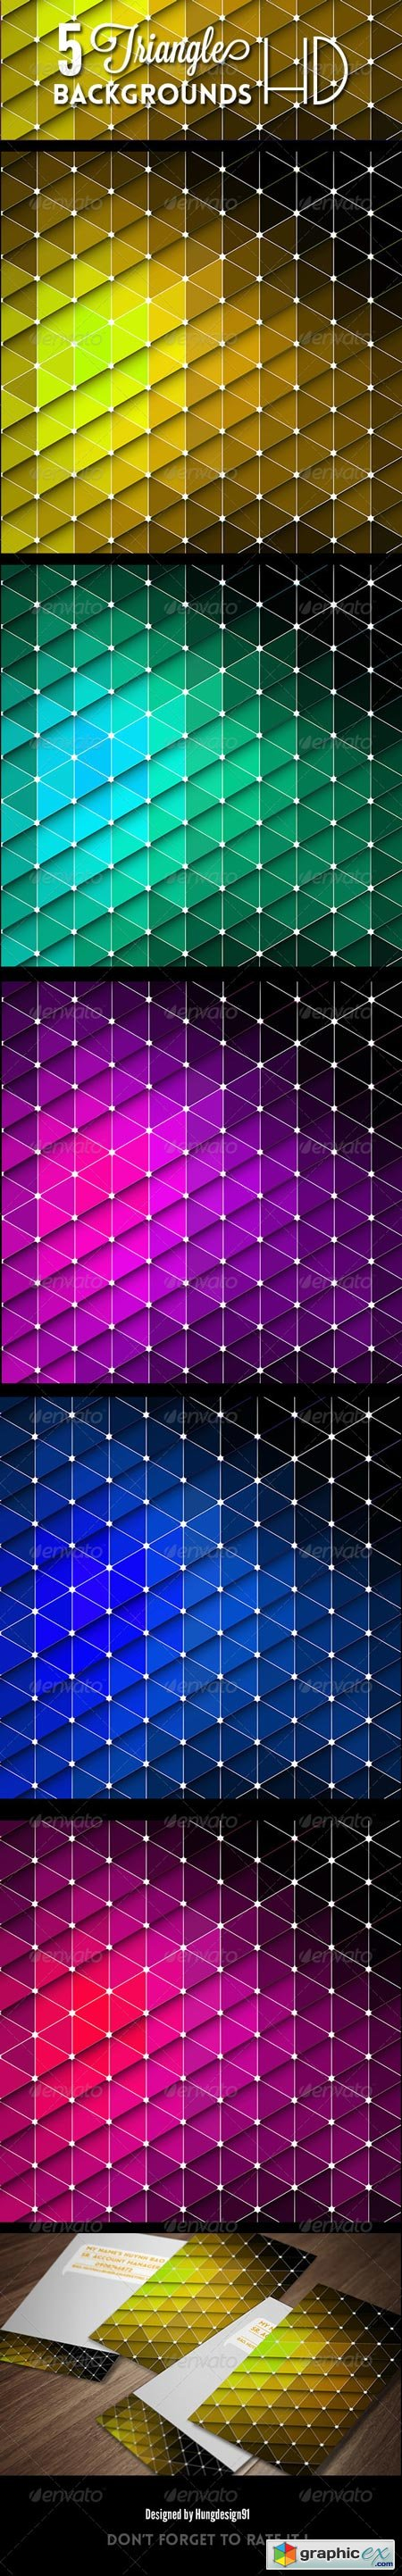 5 Triangle Backgrounds HD 7111259